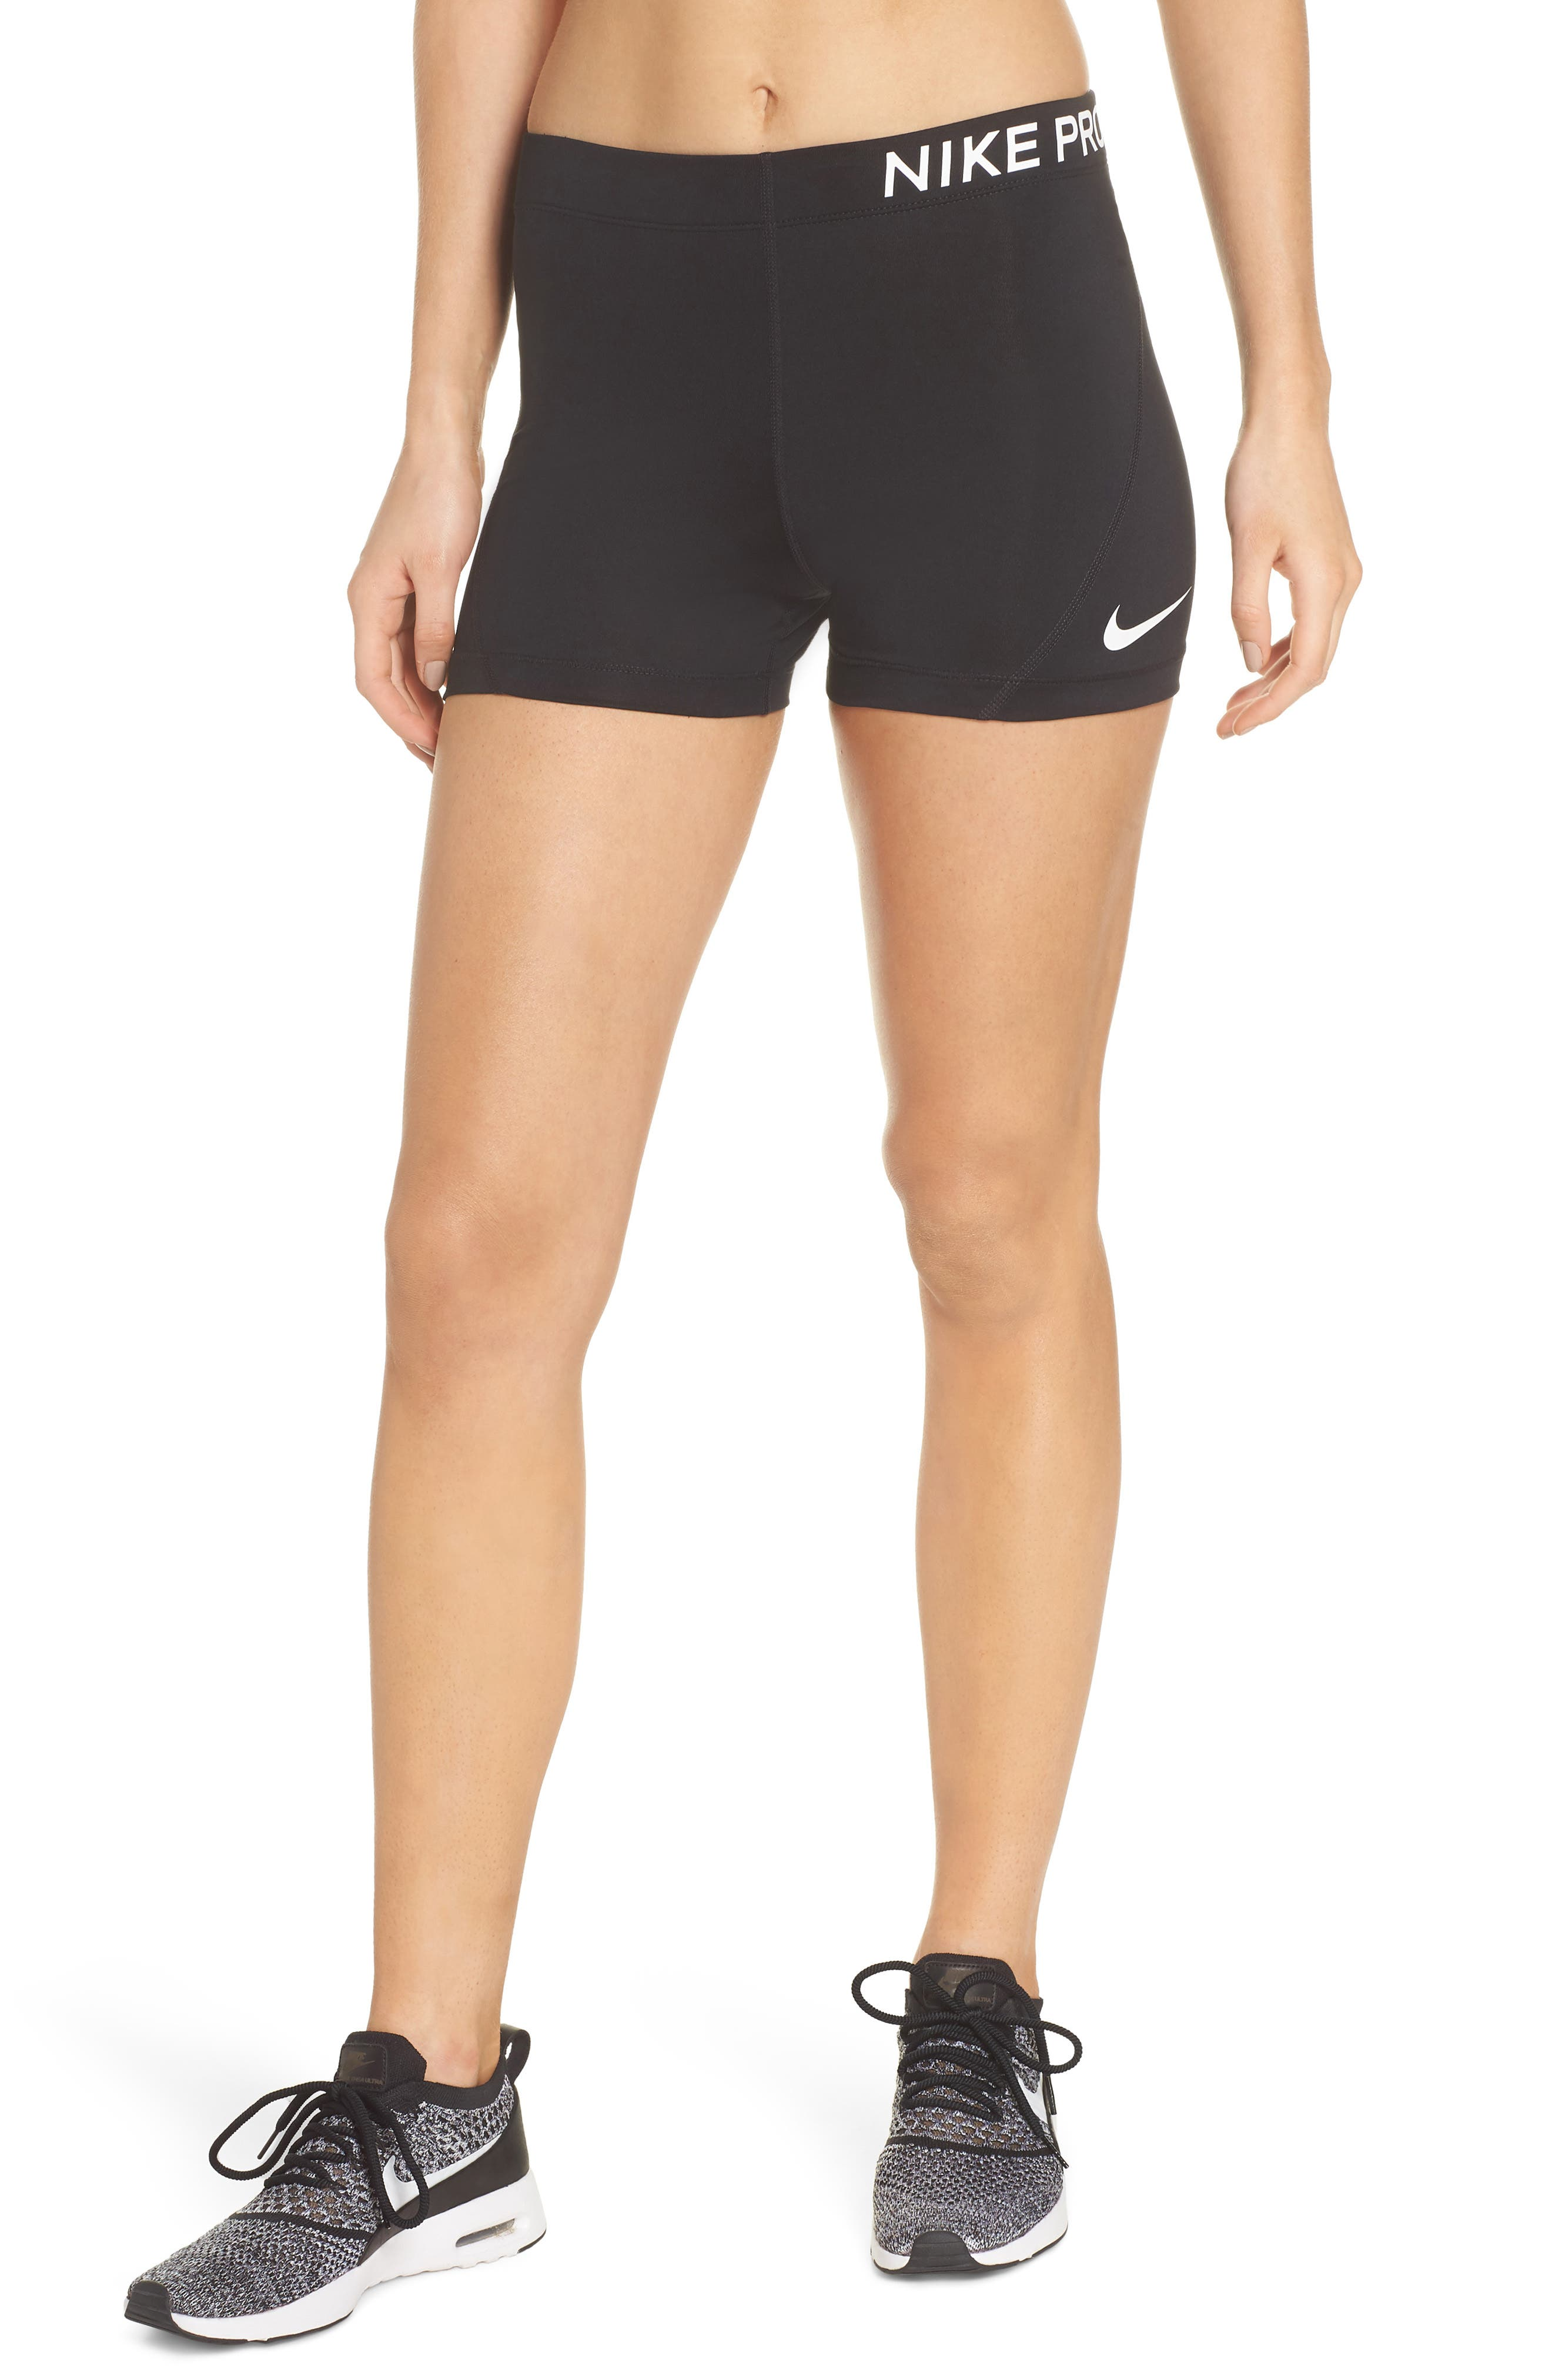 Pro Short Shorts,                             Main thumbnail 1, color,                             BLACK/ WHITE